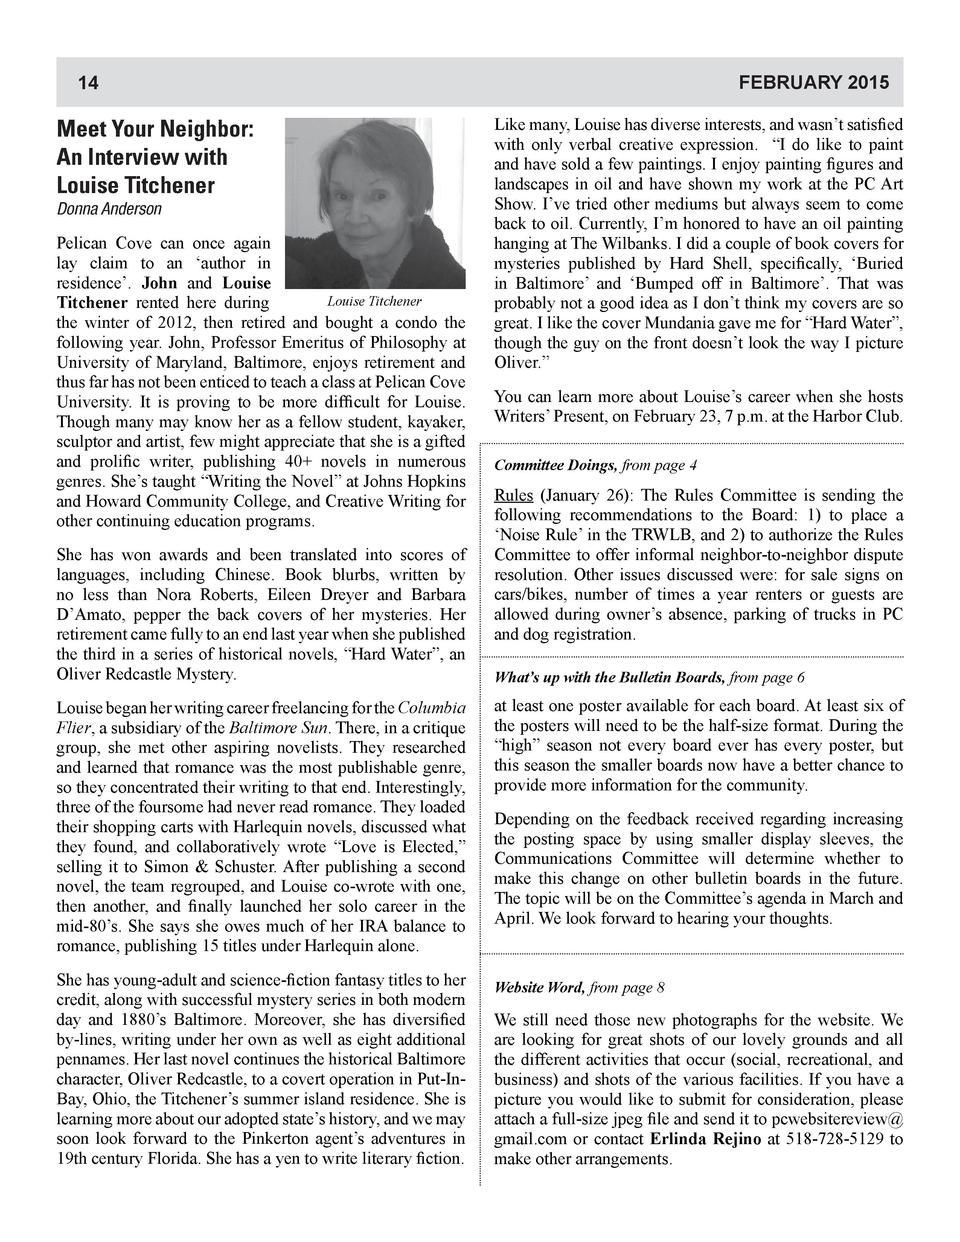 FEBRUARY 2015  14  Meet Your Neighbor  An Interview with Louise Titchener Donna Anderson  Pelican Cove can once again lay ...